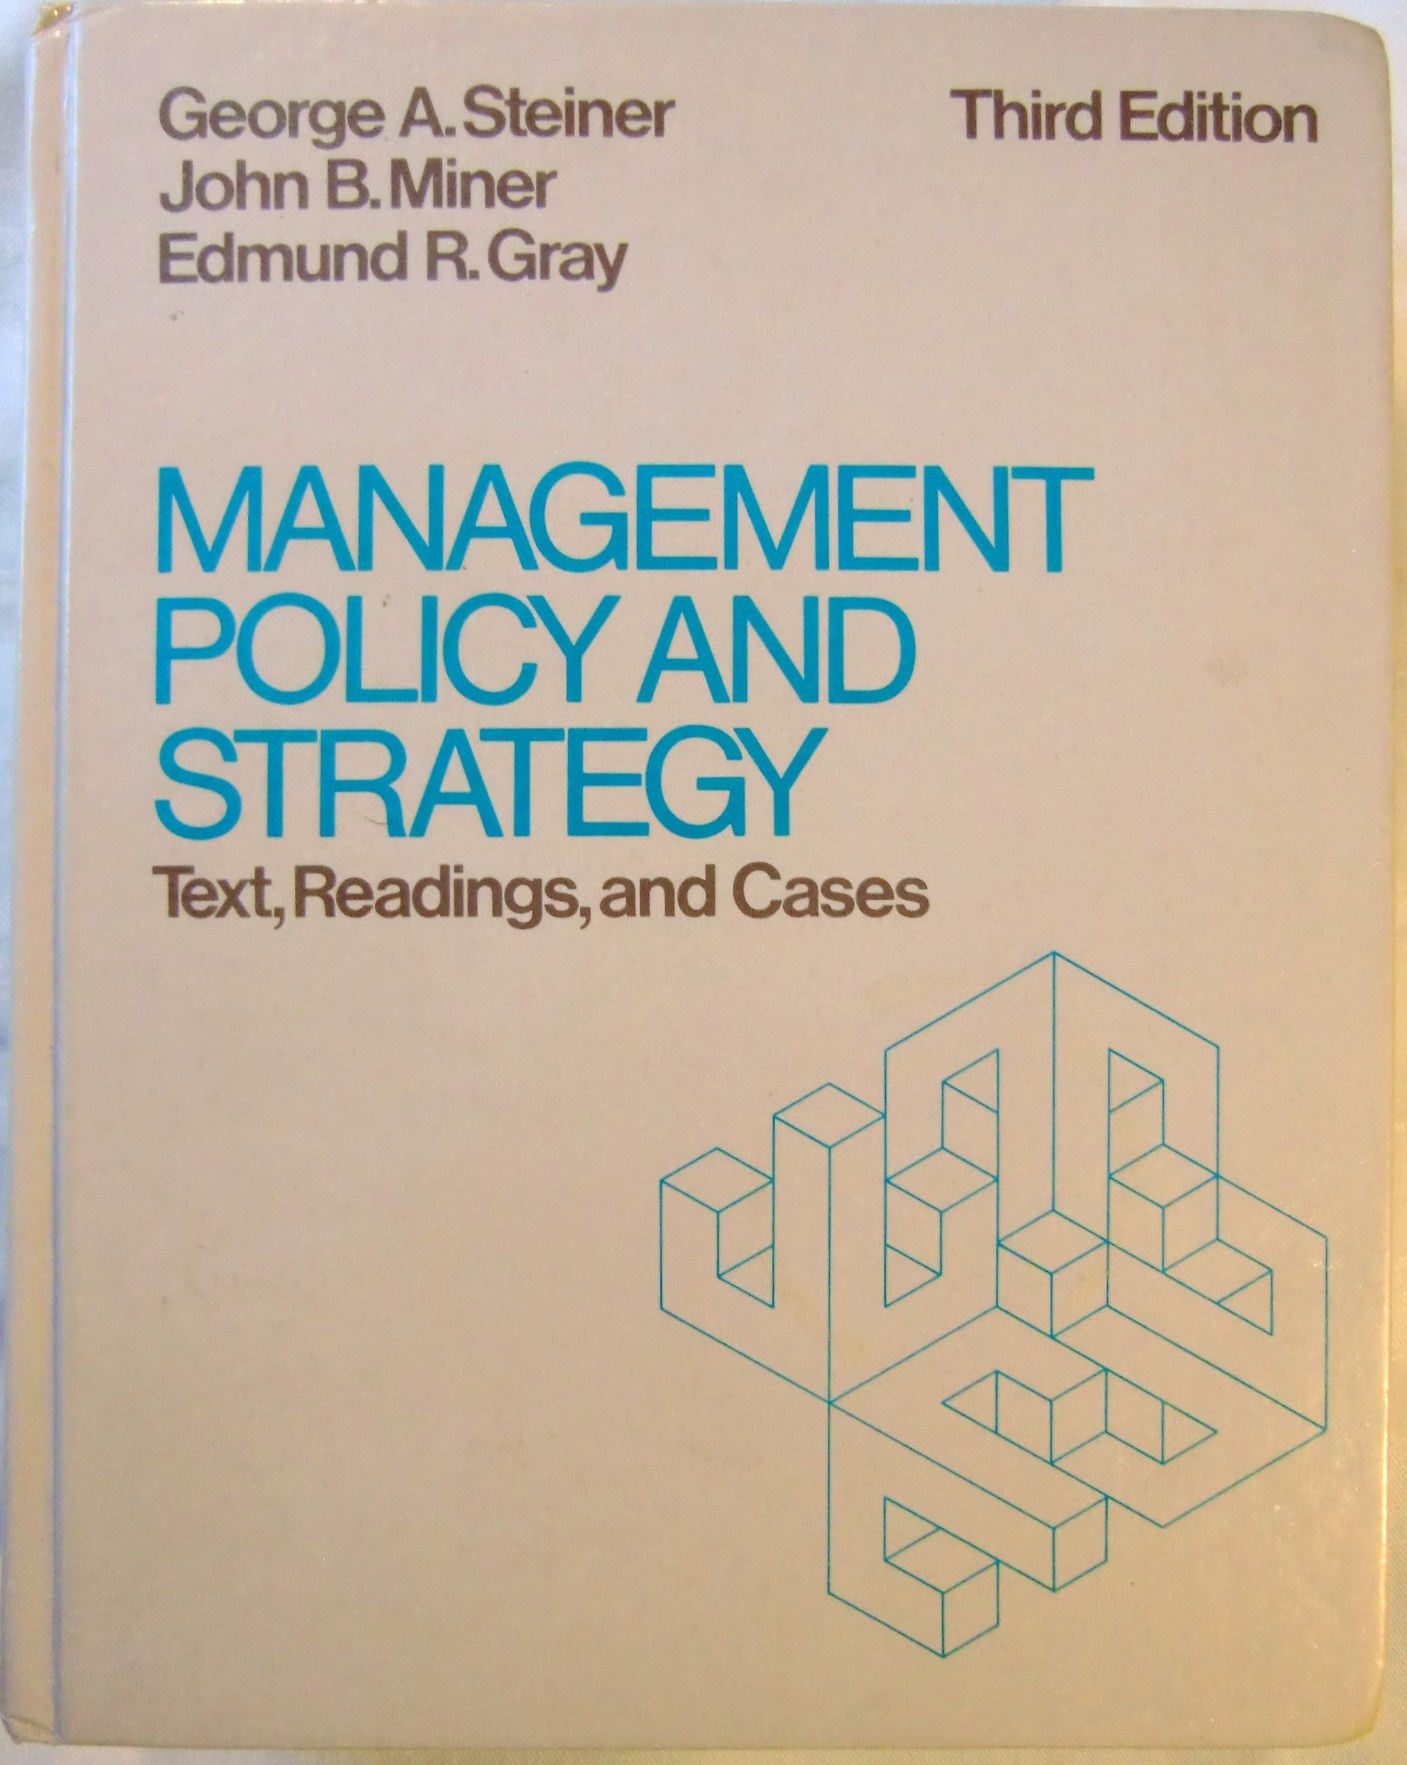 Management Policy and Strategy